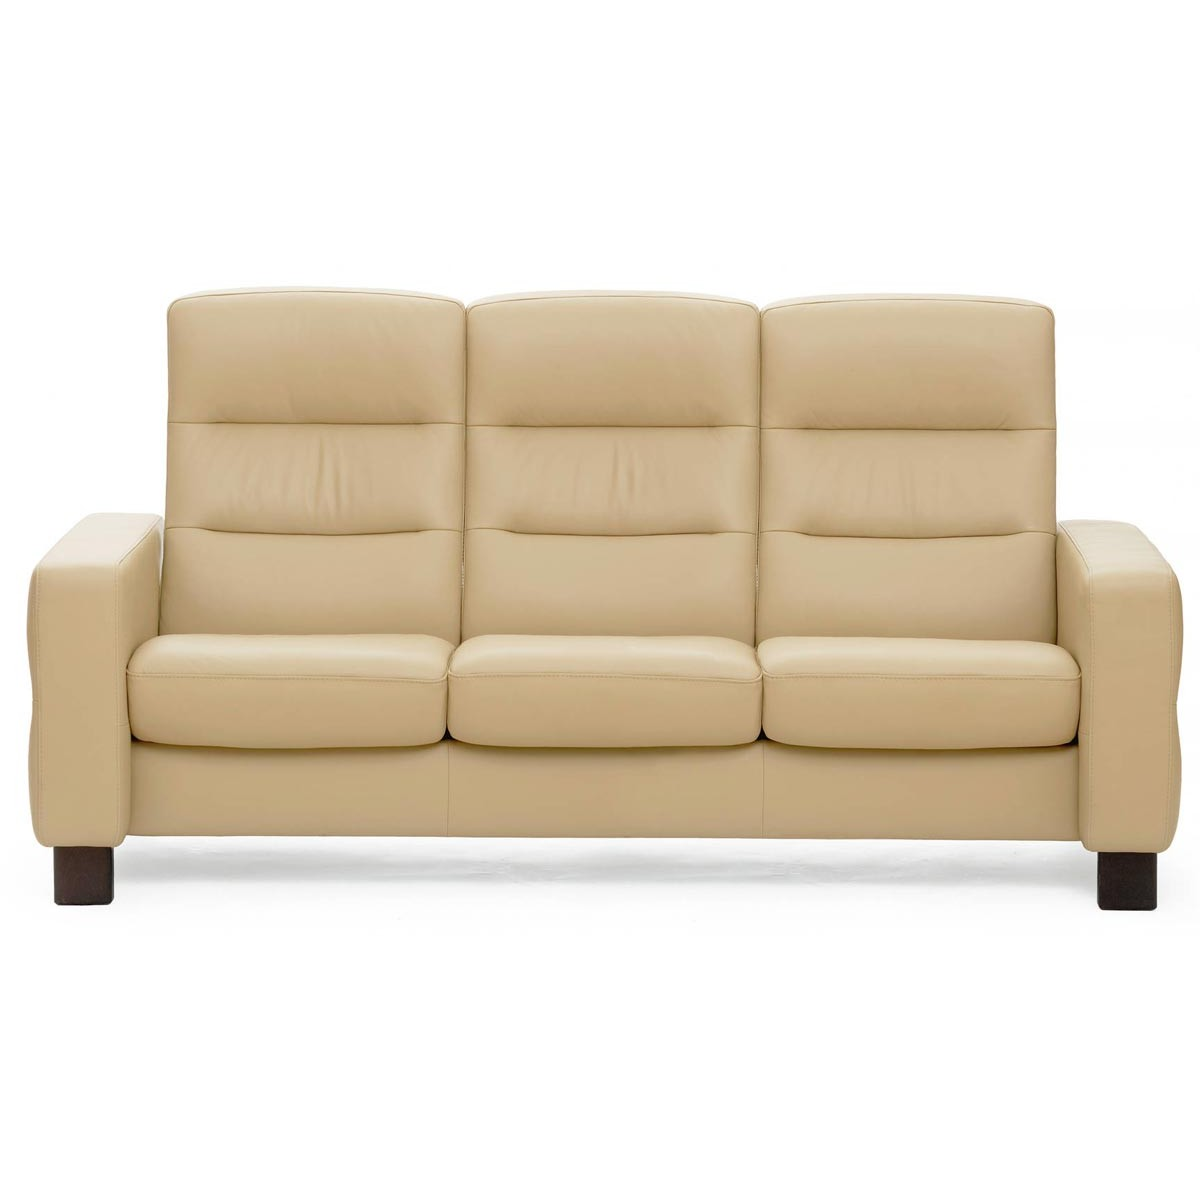 Stressless Wave High Back Sofa